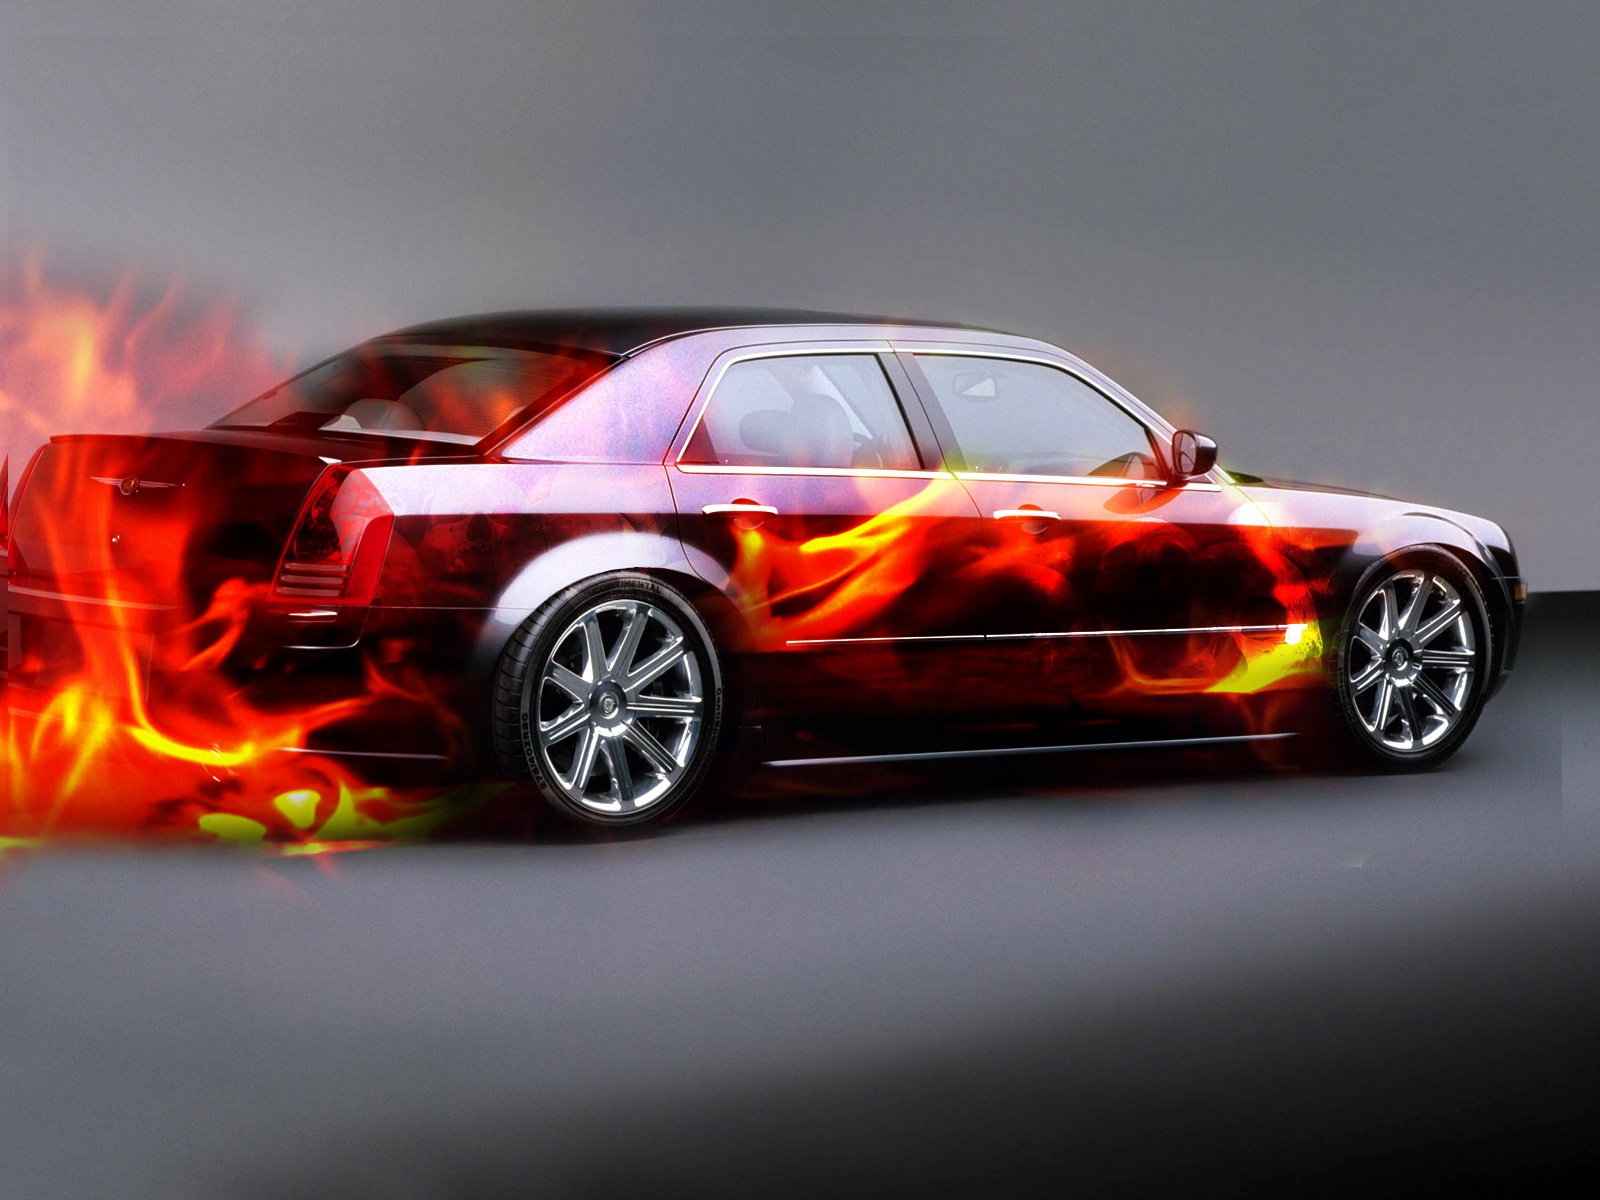 Custom Muscle Cars Wallpaper Cars as pictures and 1600x1200